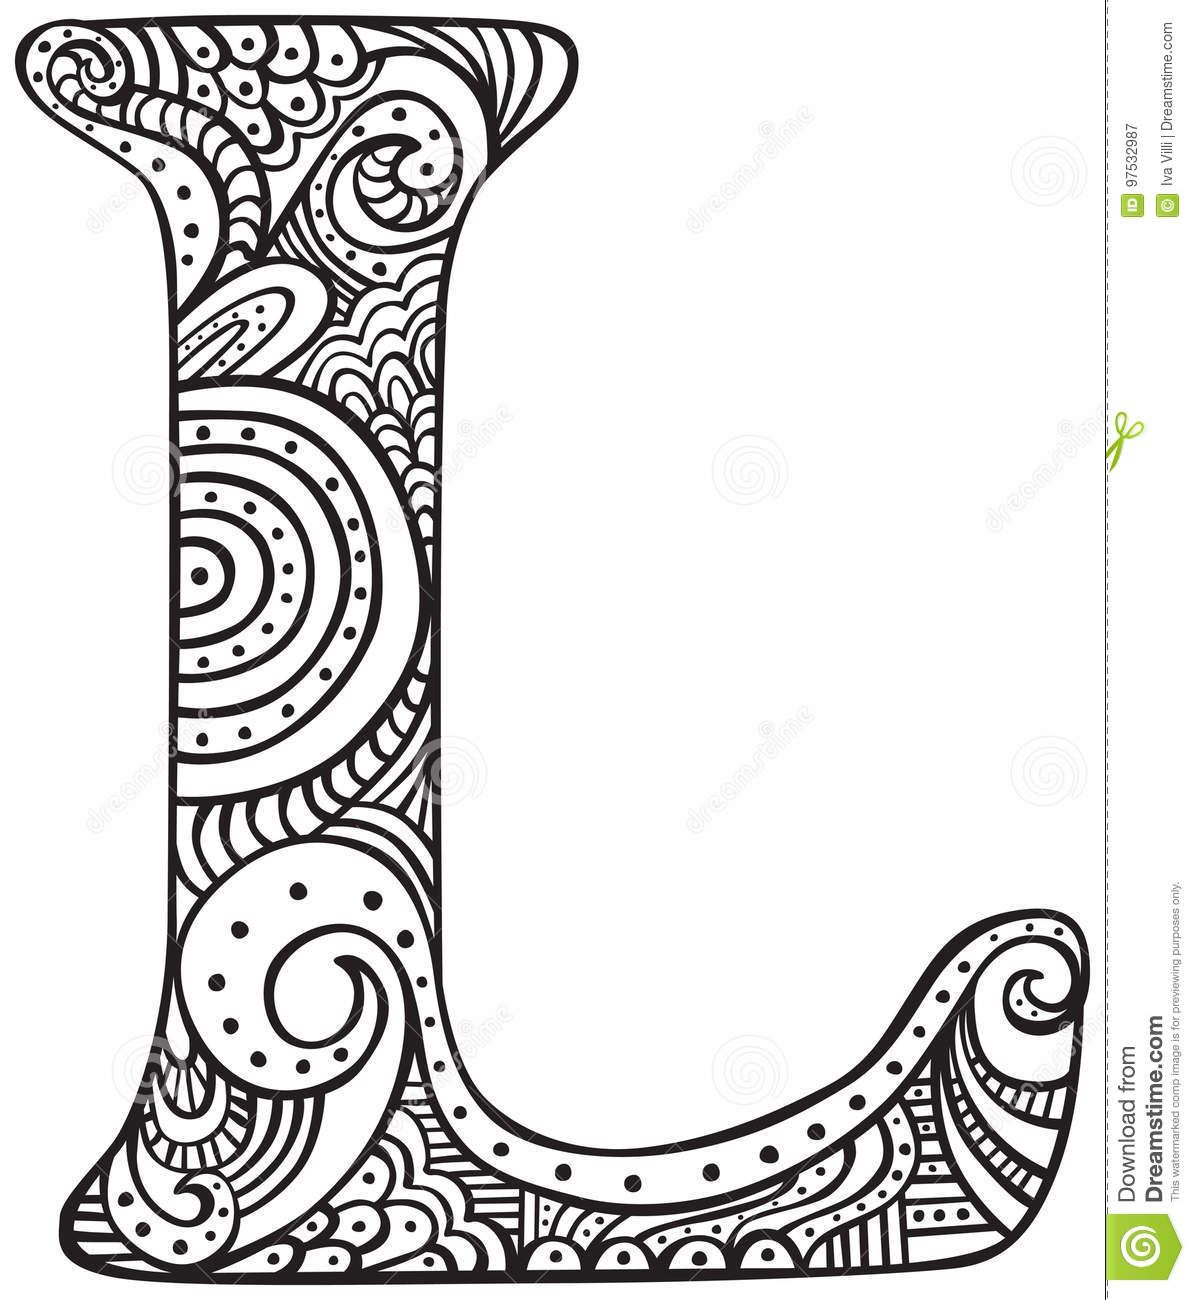 Illustration About Hand Drawn Capital Letter L In Black Coloring Sheet For Adults Illustration Of Font Coloring Letters Doodle Lettering Doodle Art Letters